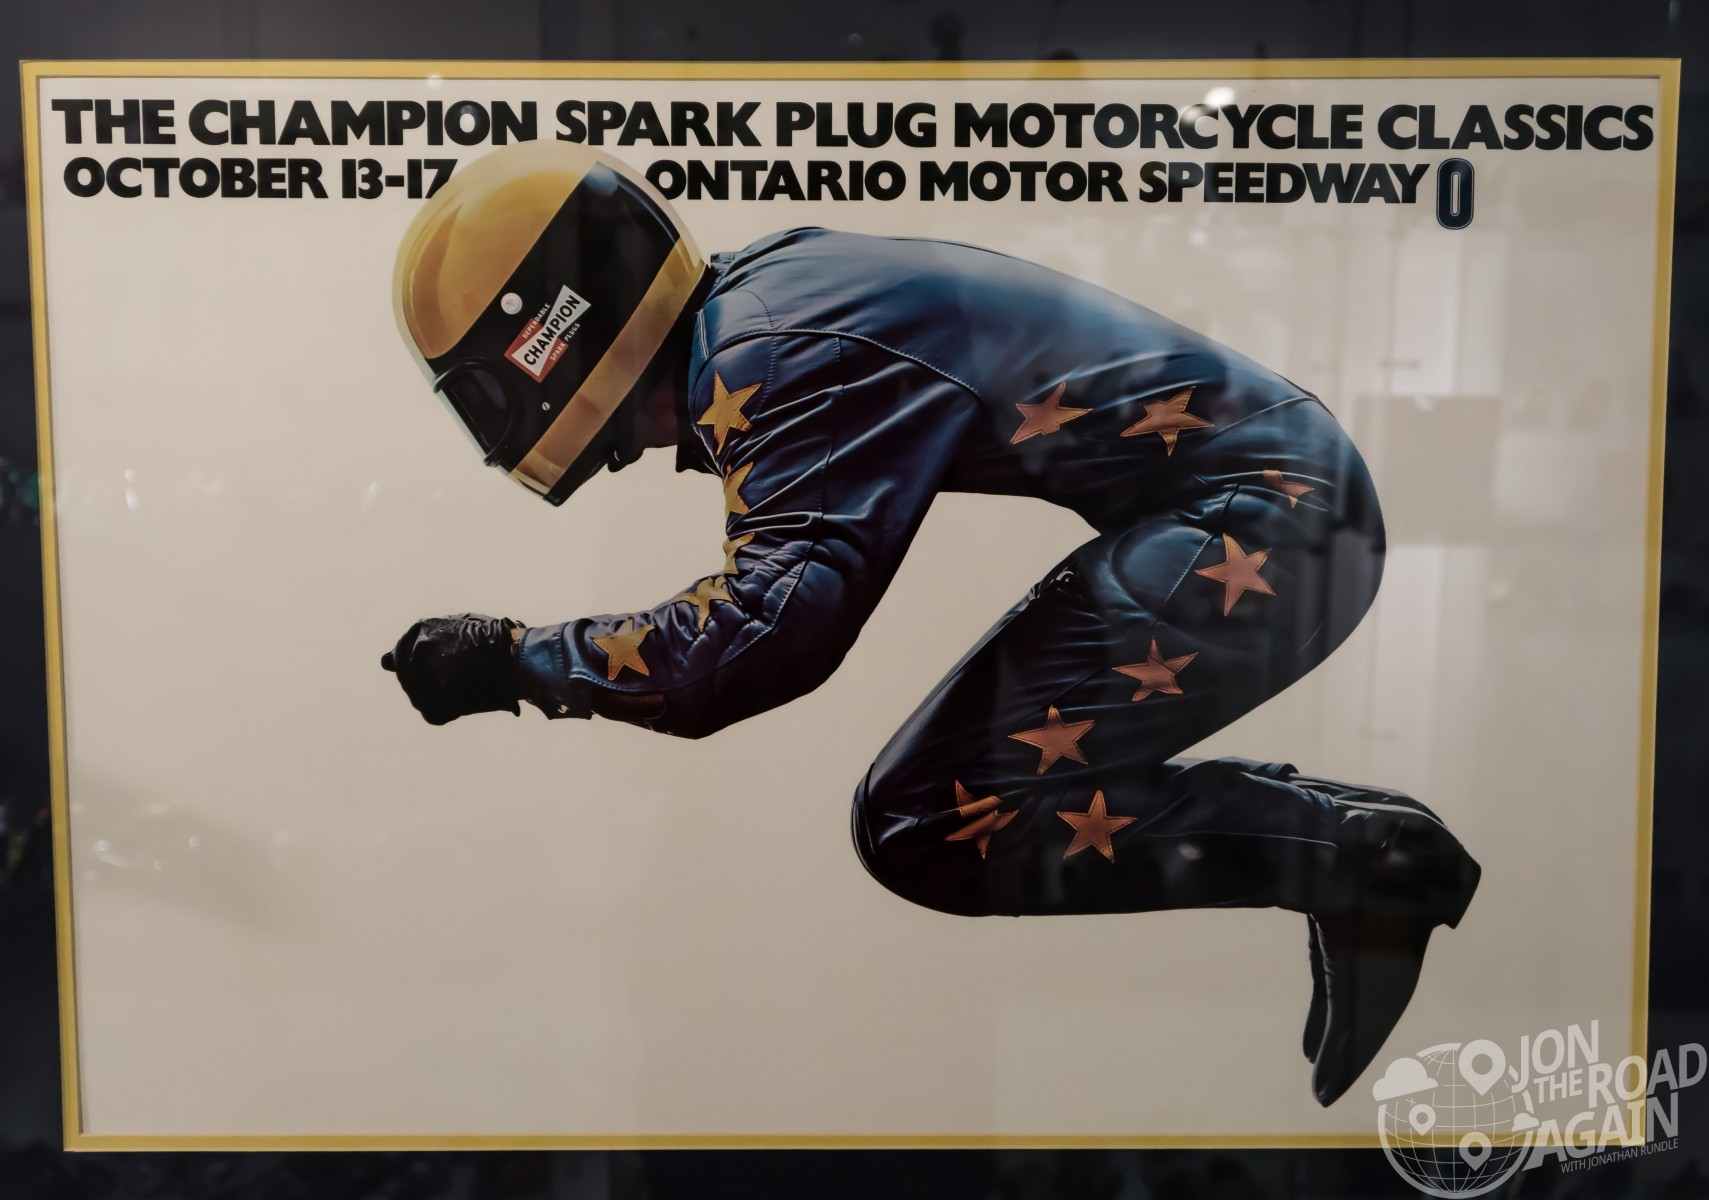 Champion Spark Plug Motorcycle Classics Poster